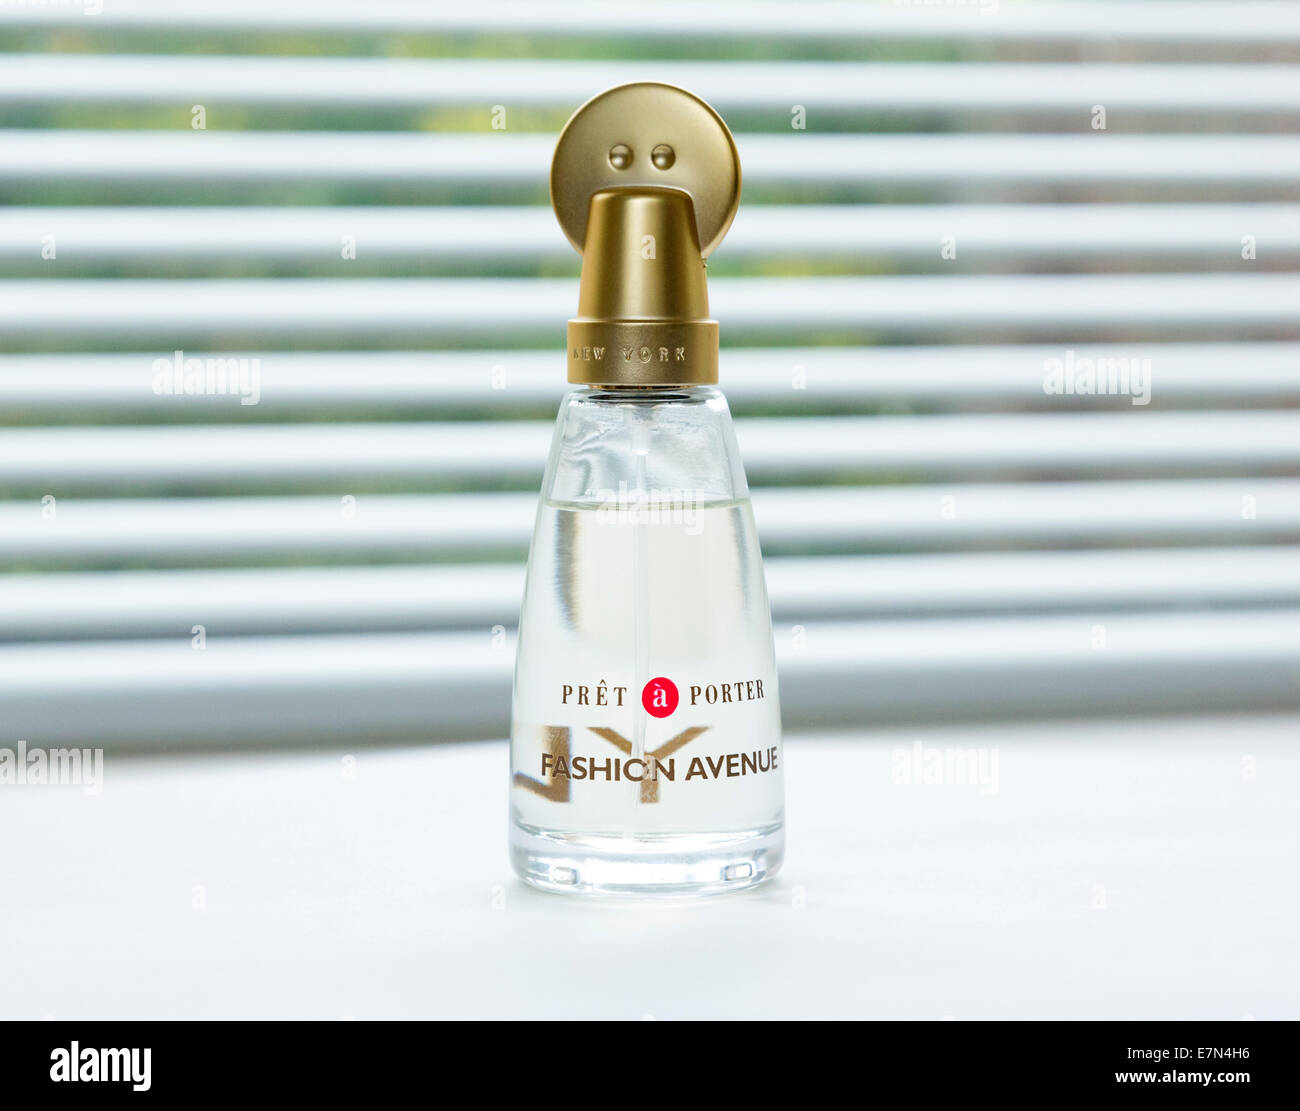 Pret A Porter FASHION AVENUE perfume bottle - Stock Image